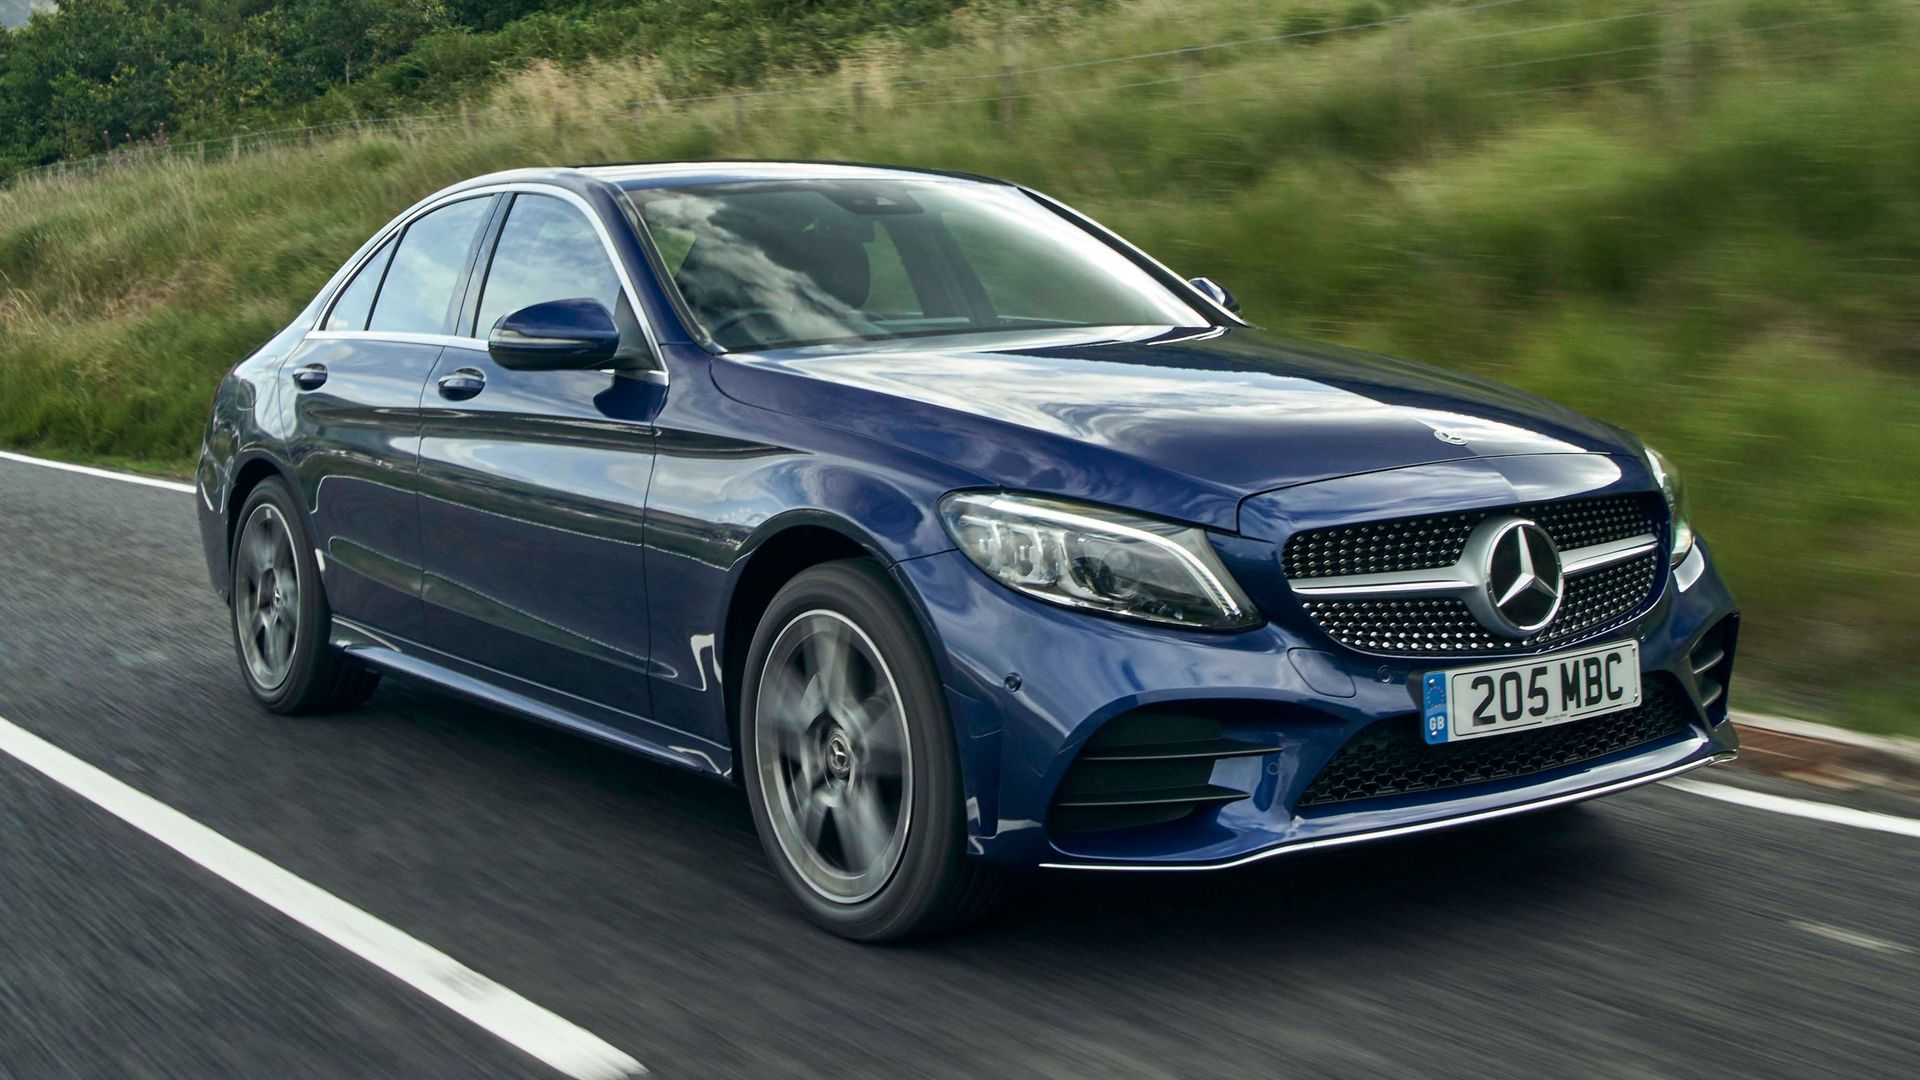 Mercedes-Benz C Class AMG Night Edition image